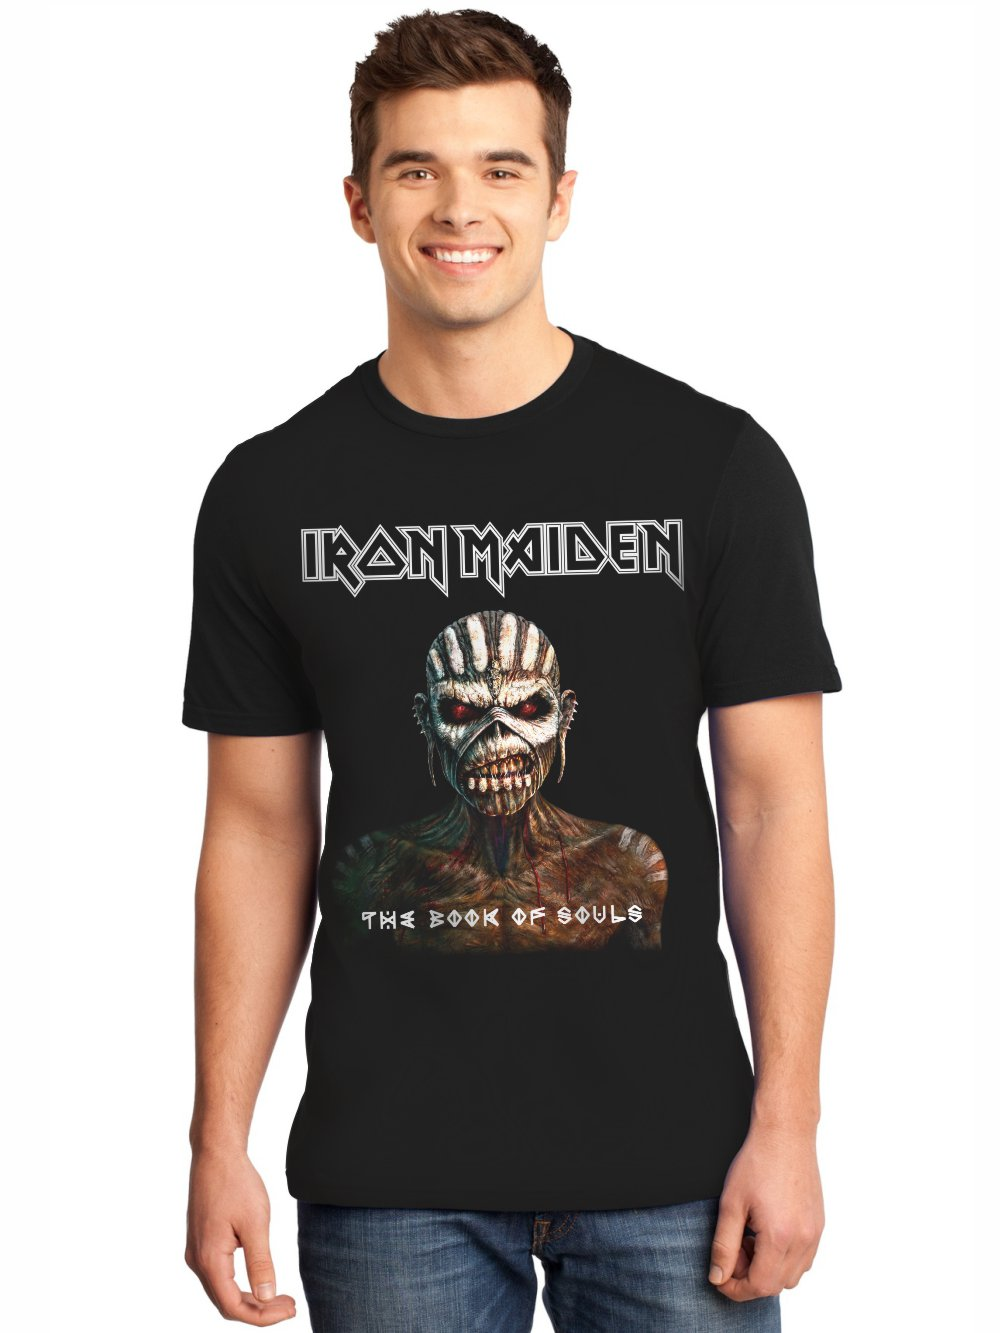 Camiseta Masculina Full Printed Iron Maiden The Book of Souls FP_001